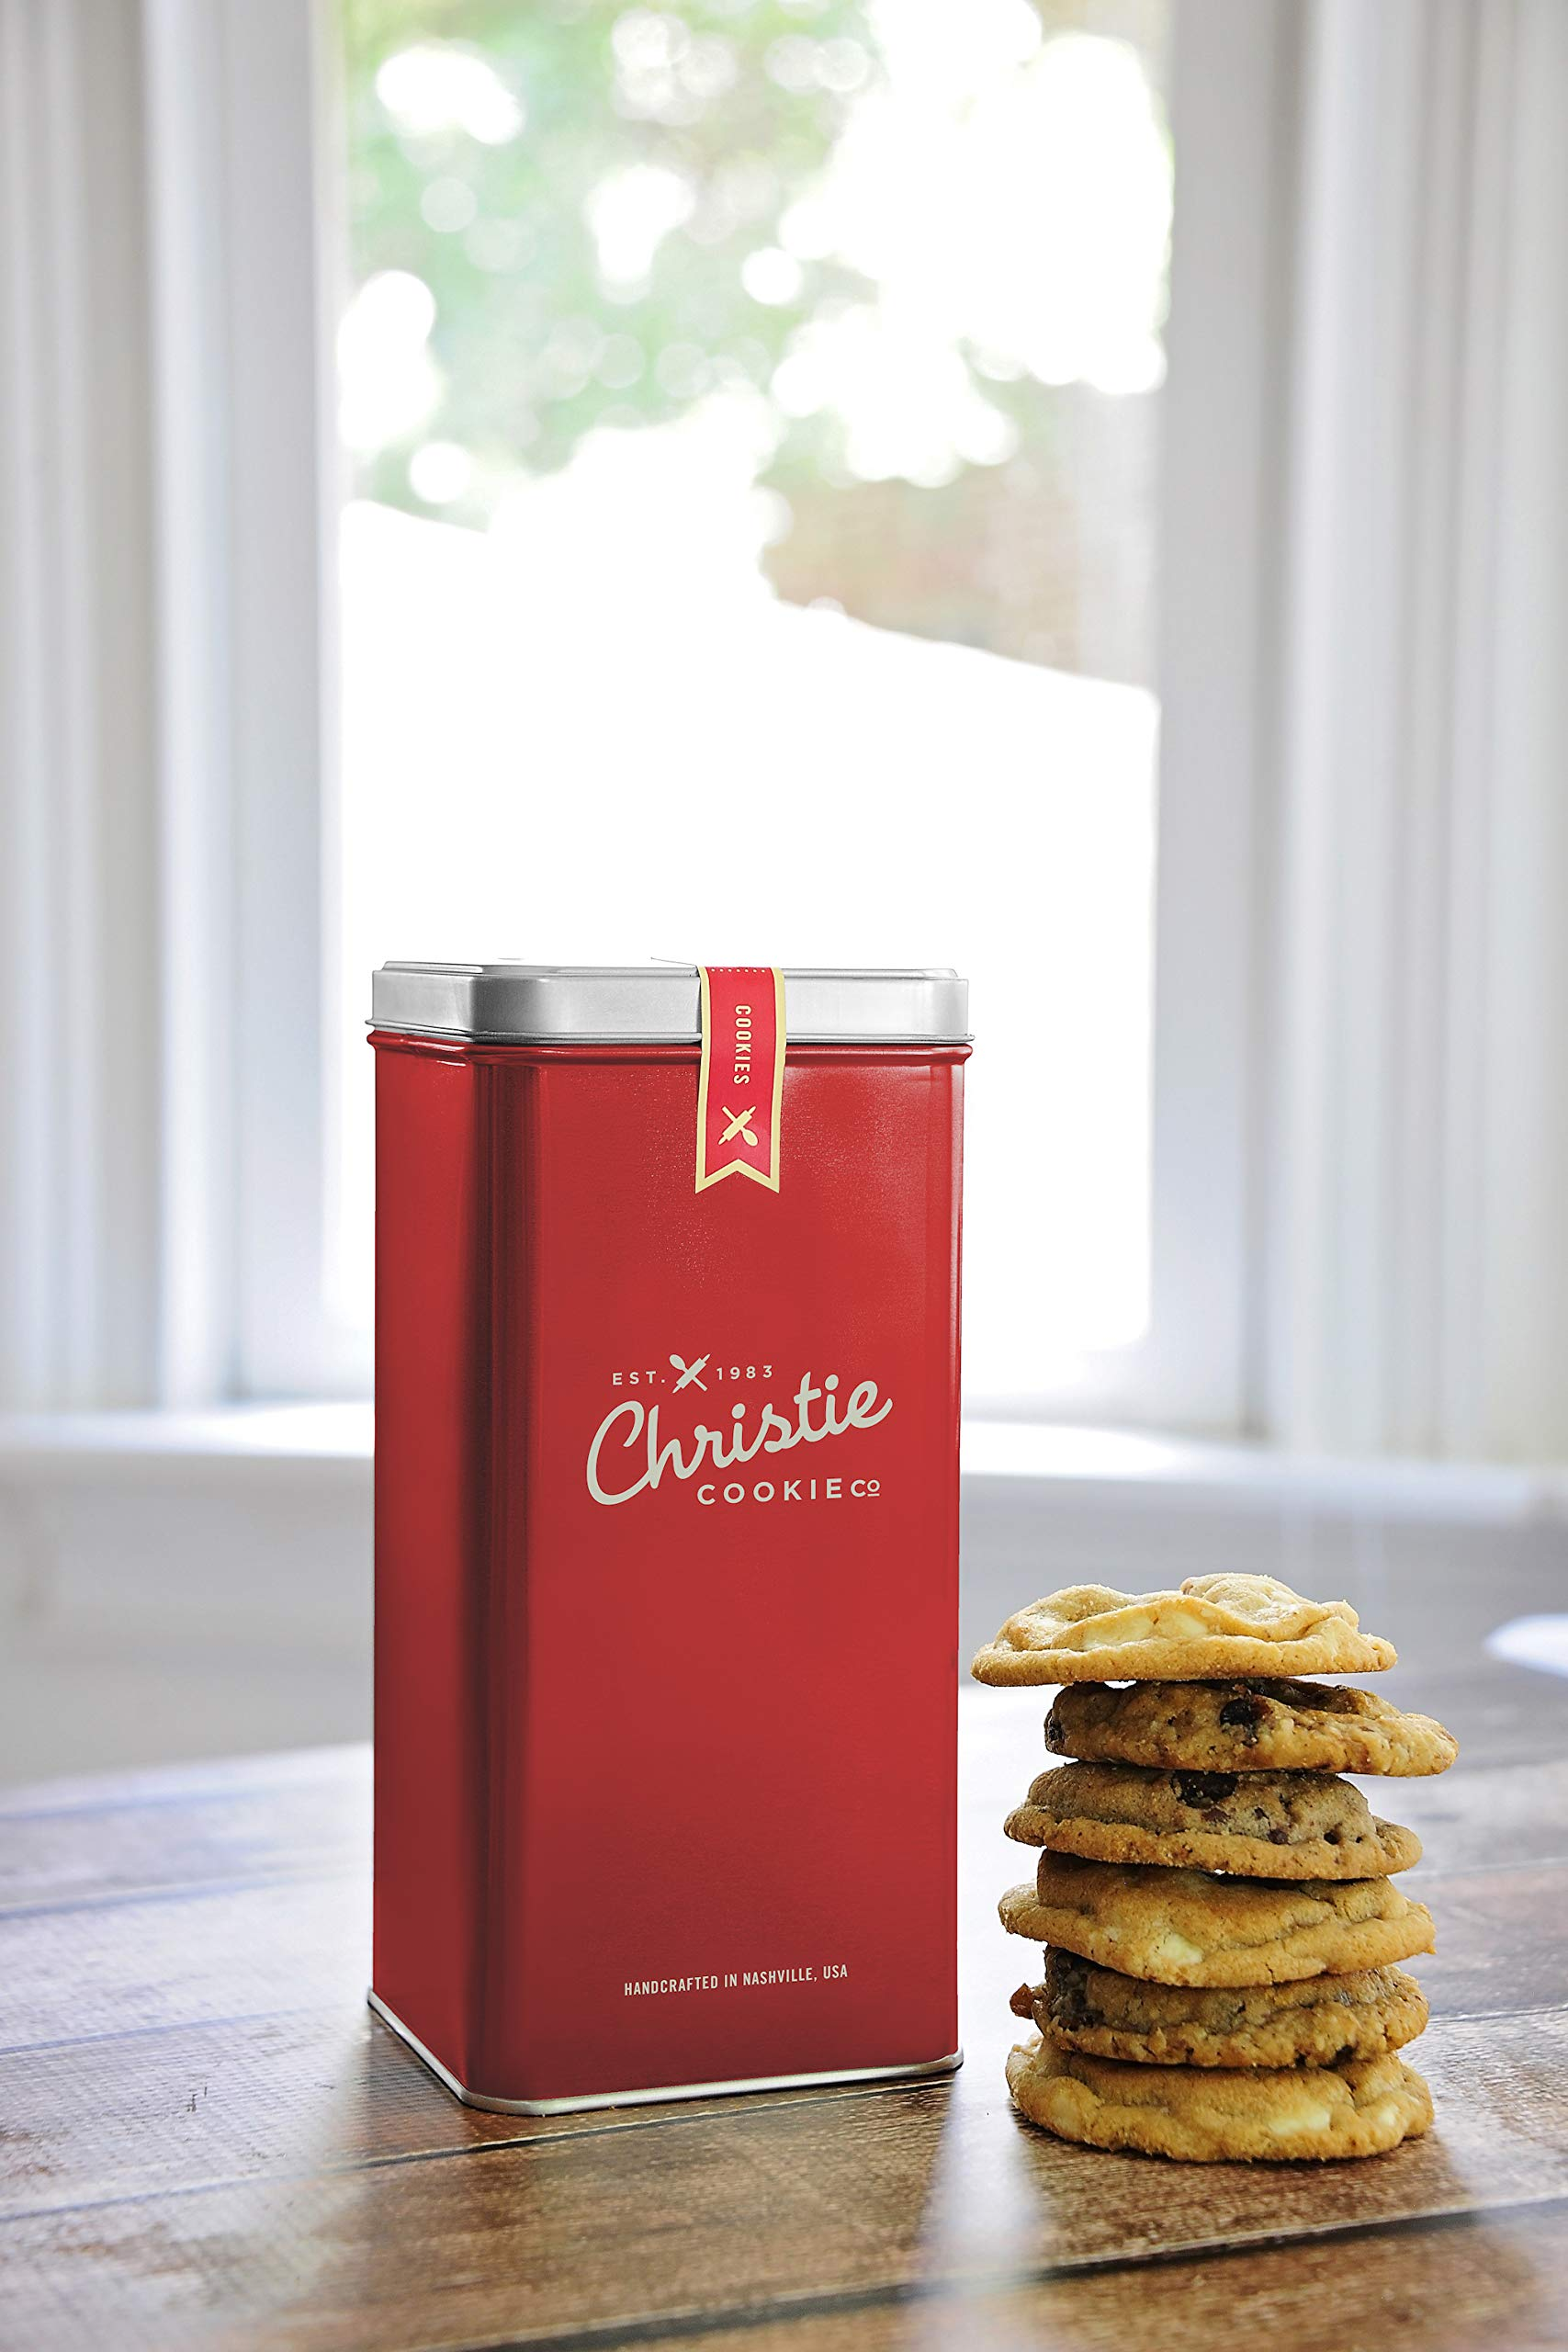 Christie Cookies, Gourmet Assorted Cookies, 12 Fresh-Baked Cookies in Red Tin, No Added Preservatives, 100% Real Butter, Holiday & Corporate Gift Tin, Birthday Gift Idea for Men & Women